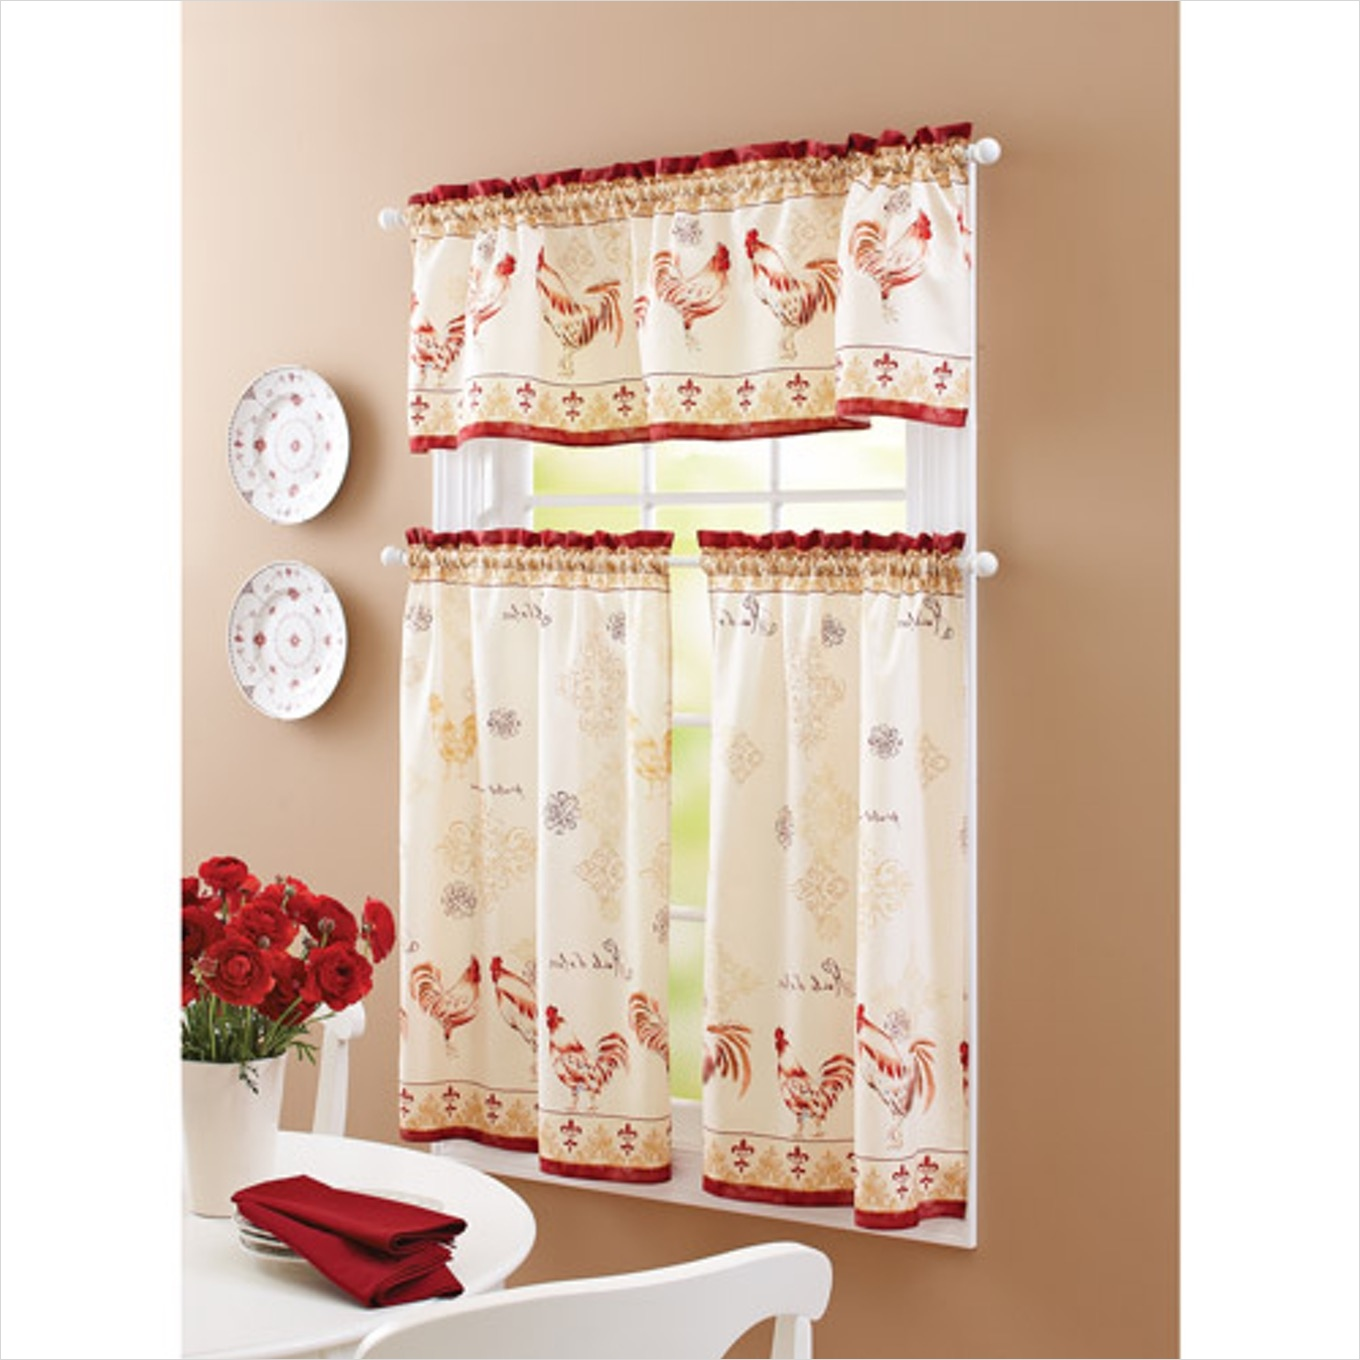 41 Perfect Farmhouse Country Kitchen Curtain Valances 85 Farmhouse Style Curtains Country Swag Kitchen Valances for Windows About Country Style Kitchen 2